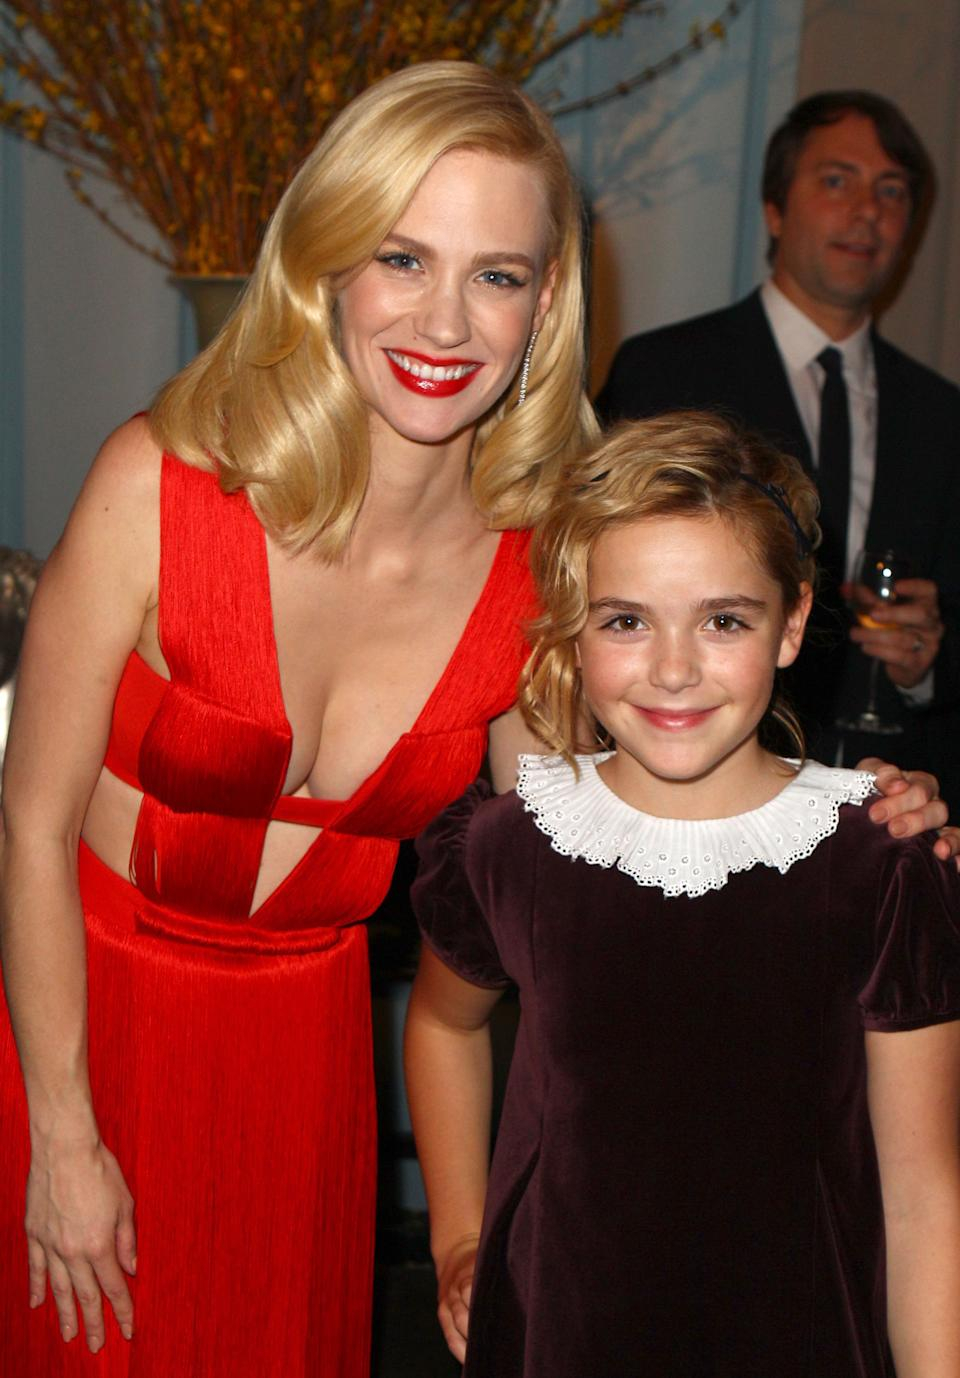 January Jones and Kiernan Shipka attend AMC's 2011 Golden Globe Awards viewing and after party held at The Beverly Hilton hotel on January 16, 2011 in Los Angeles, California.